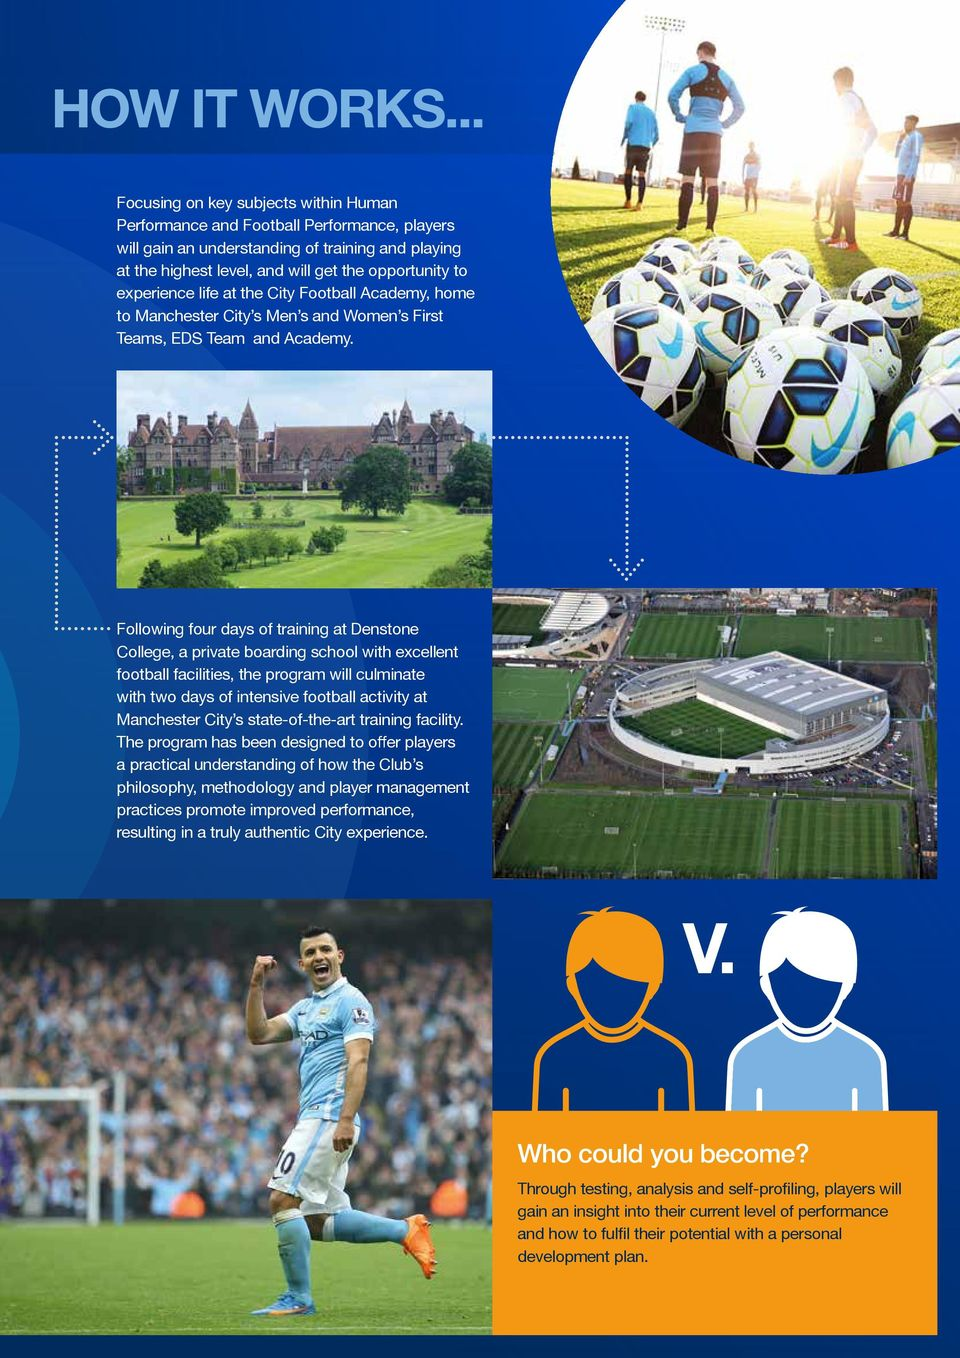 experience life at the City Football Academy, home to Manchester City s Men s and Women s First Teams, EDS Team and Academy.